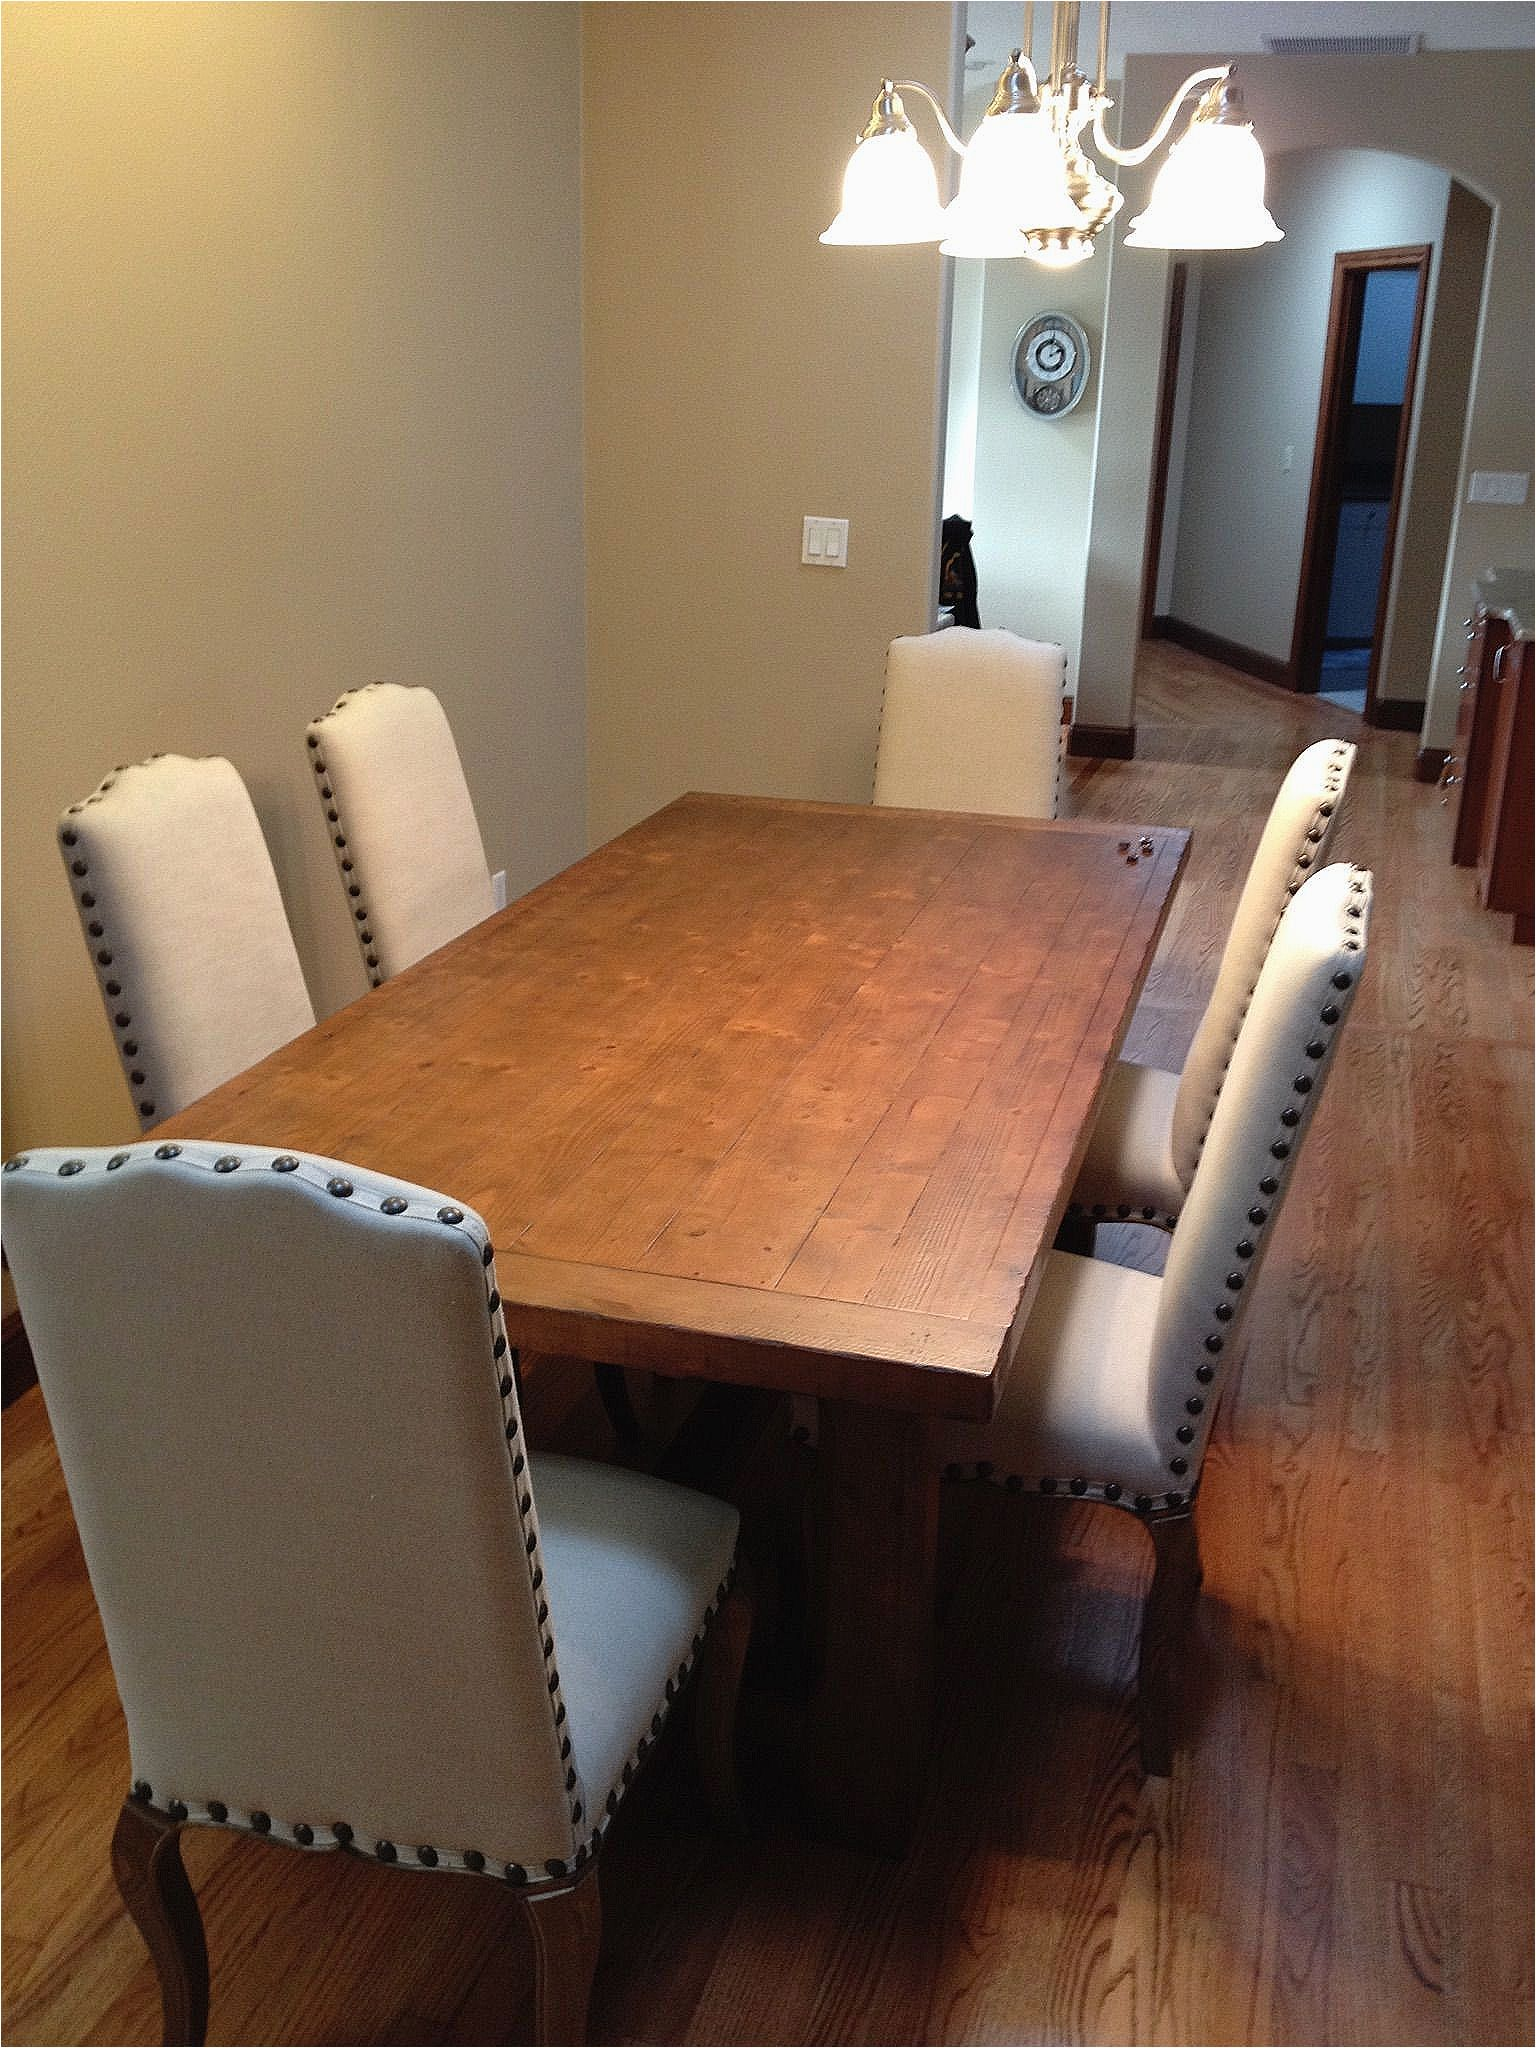 Calais Dining Table And Chairs Dining Table Chairs Dining Table Table And Chairs